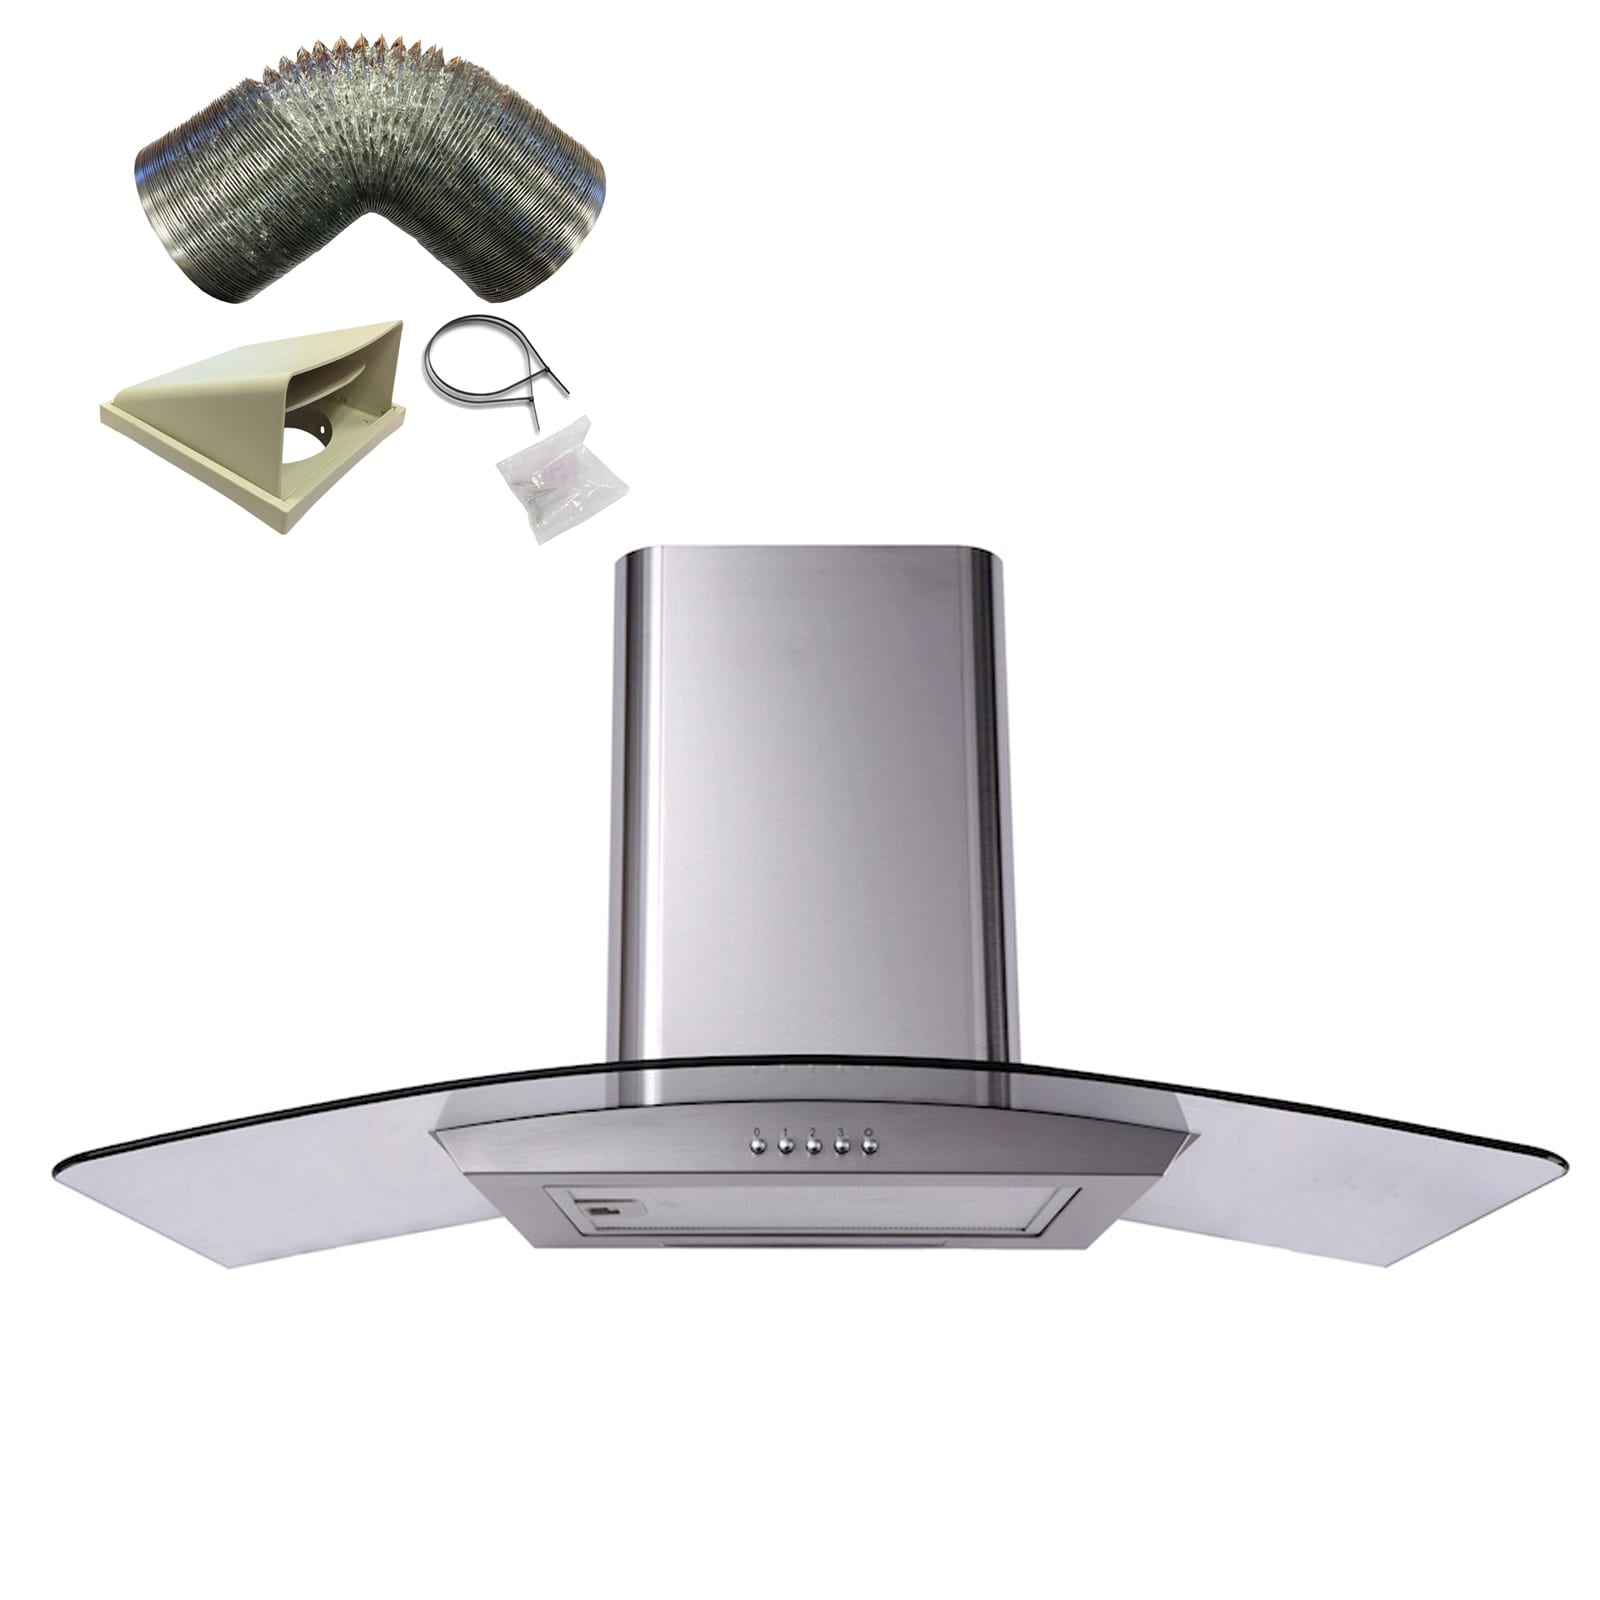 100cm = 1m Sia Cp101ss 100cm Stainless Steel Curved Glass Cooker Hood Fan And 1m Ducting